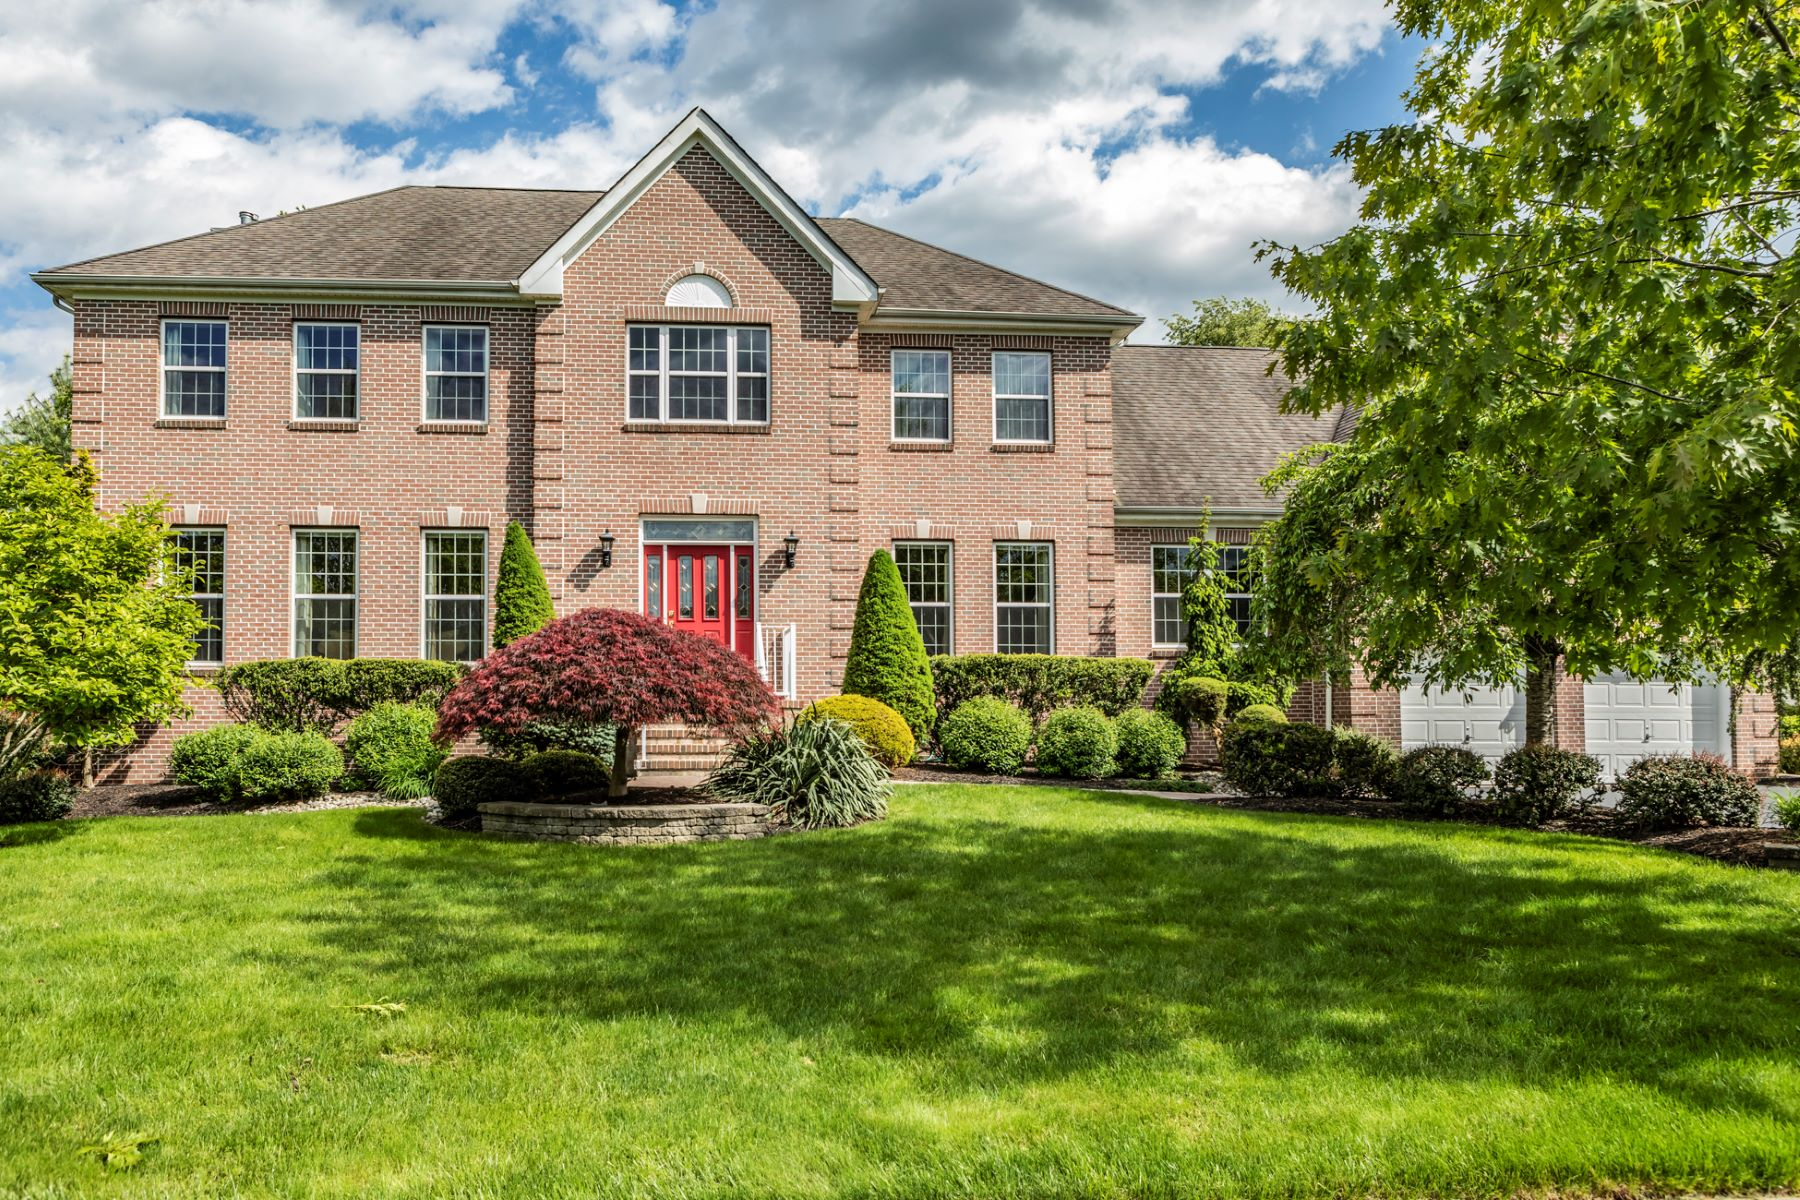 Property for Sale at Perfection for Every Kind of Entertaining 5 Mahogany Court, Plainsboro, New Jersey 08536 United States